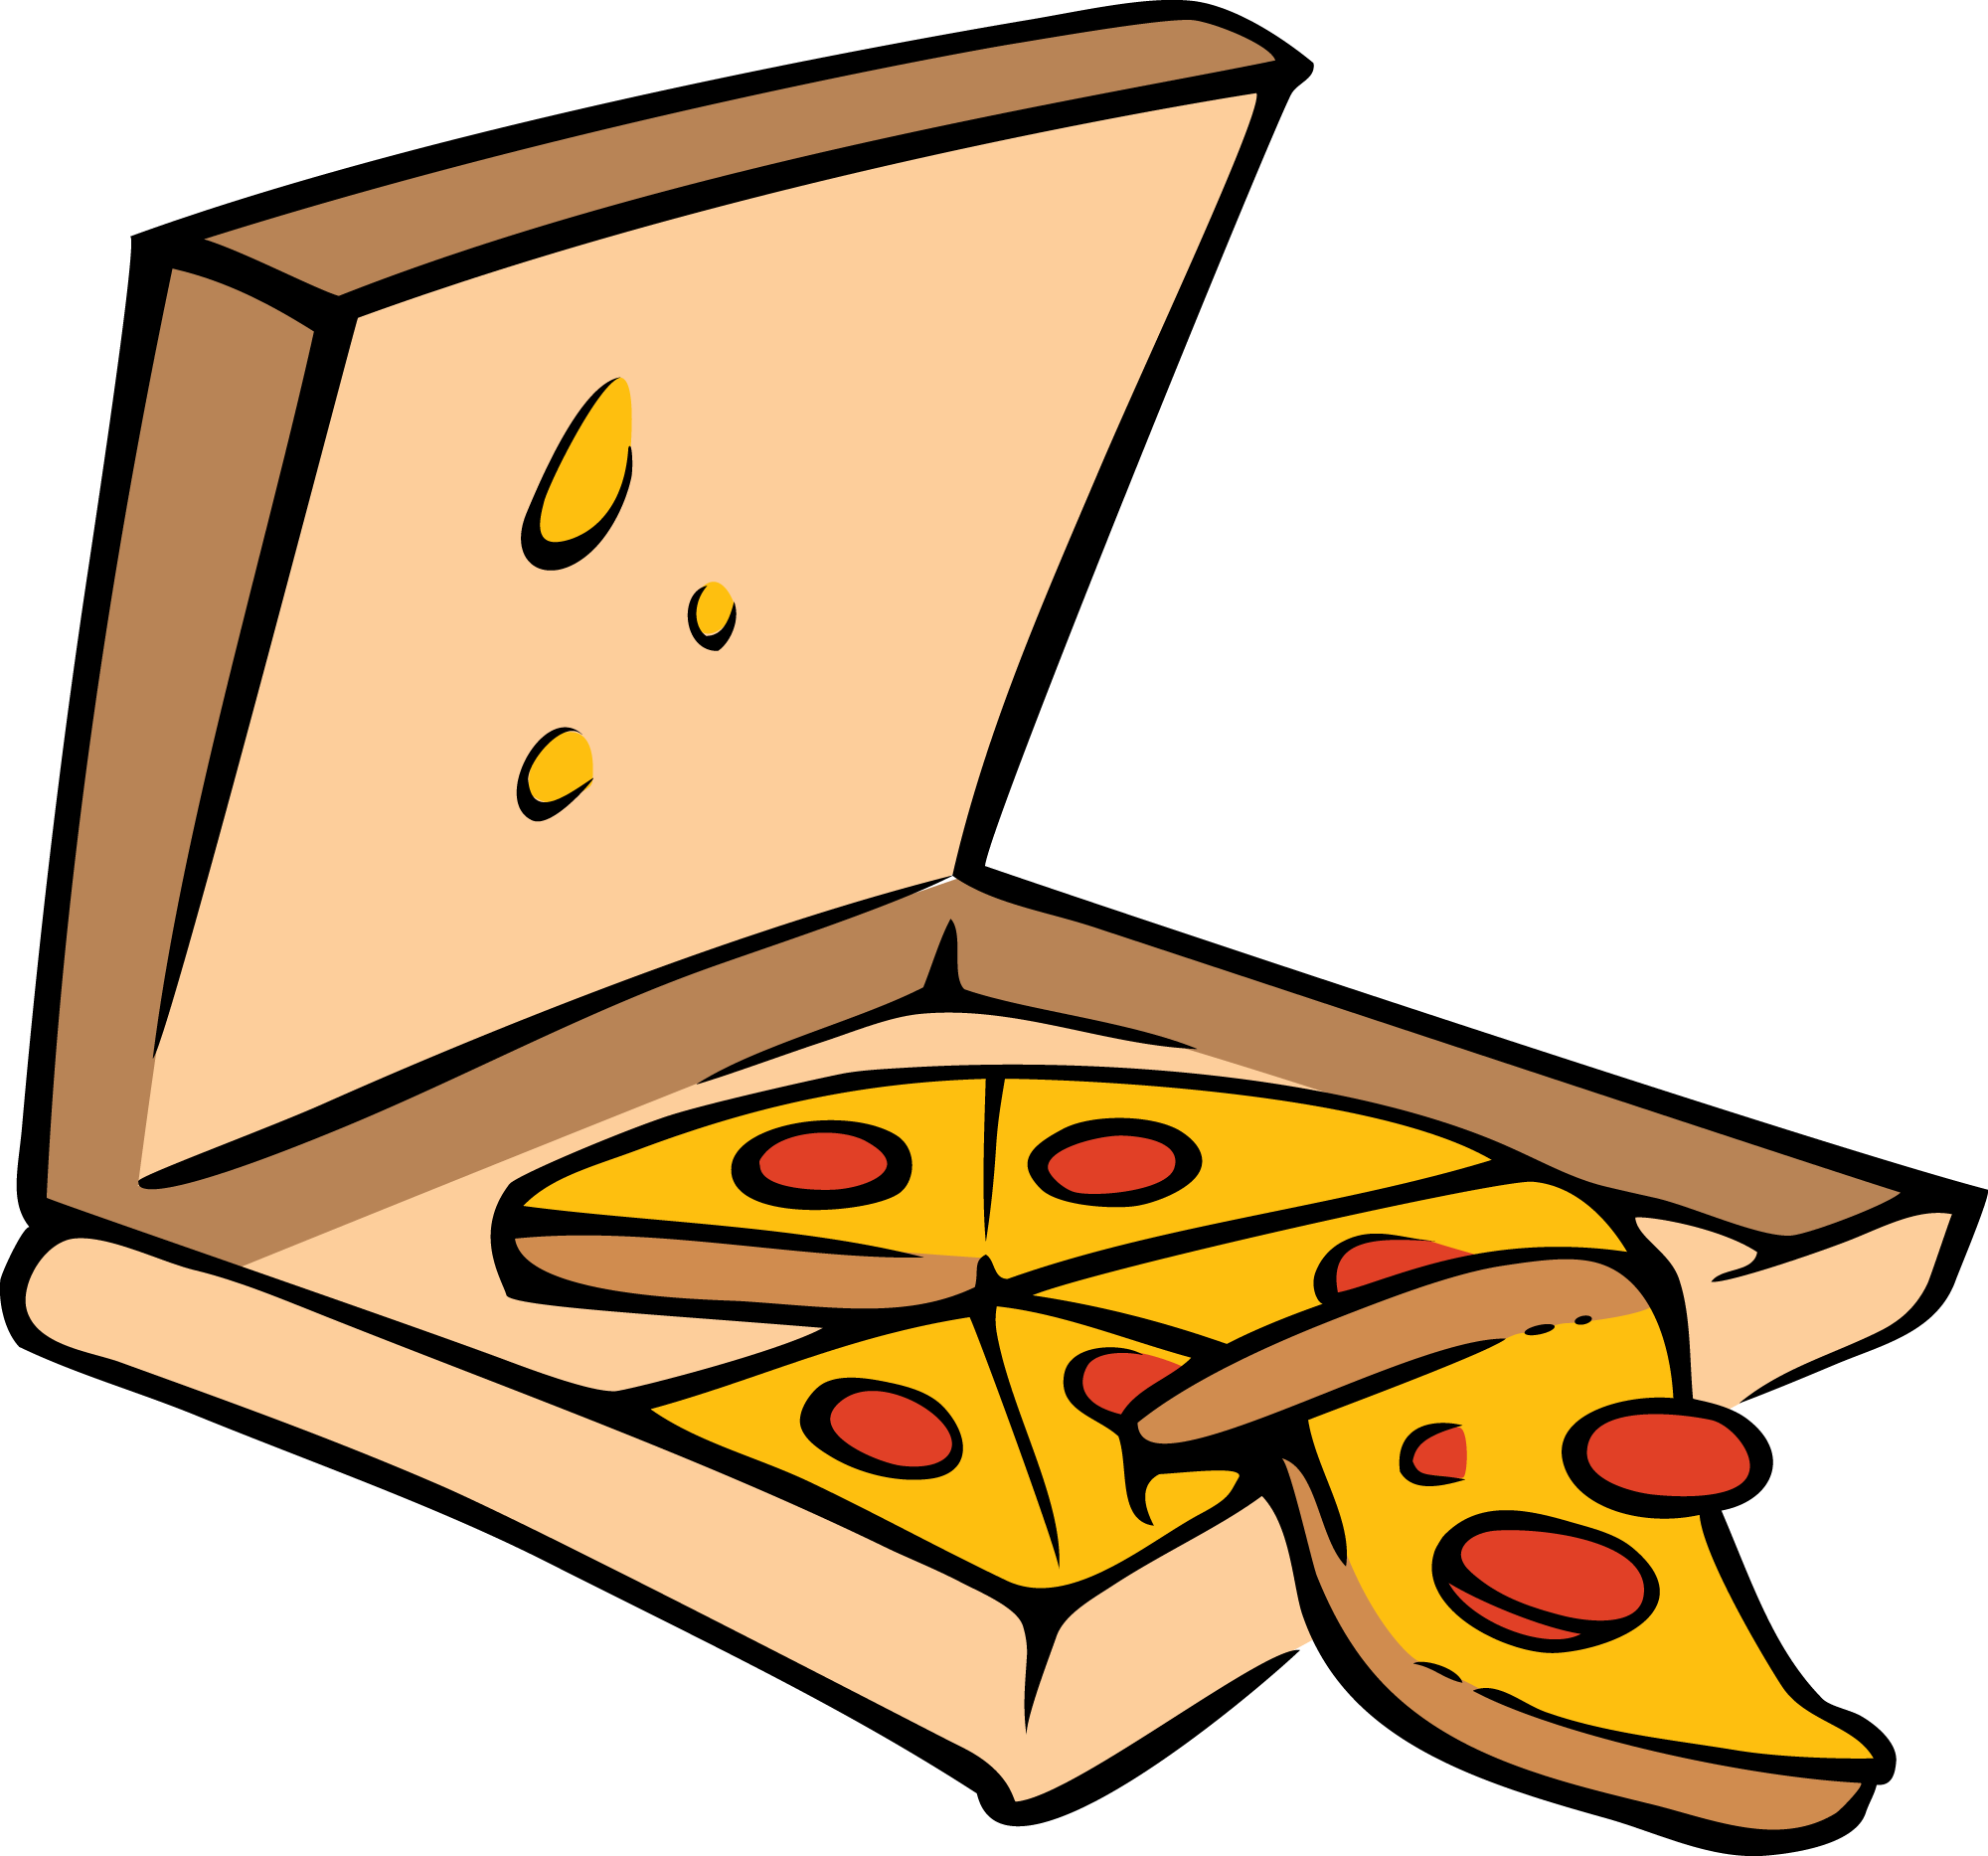 cheese pizza clipart free - photo #16